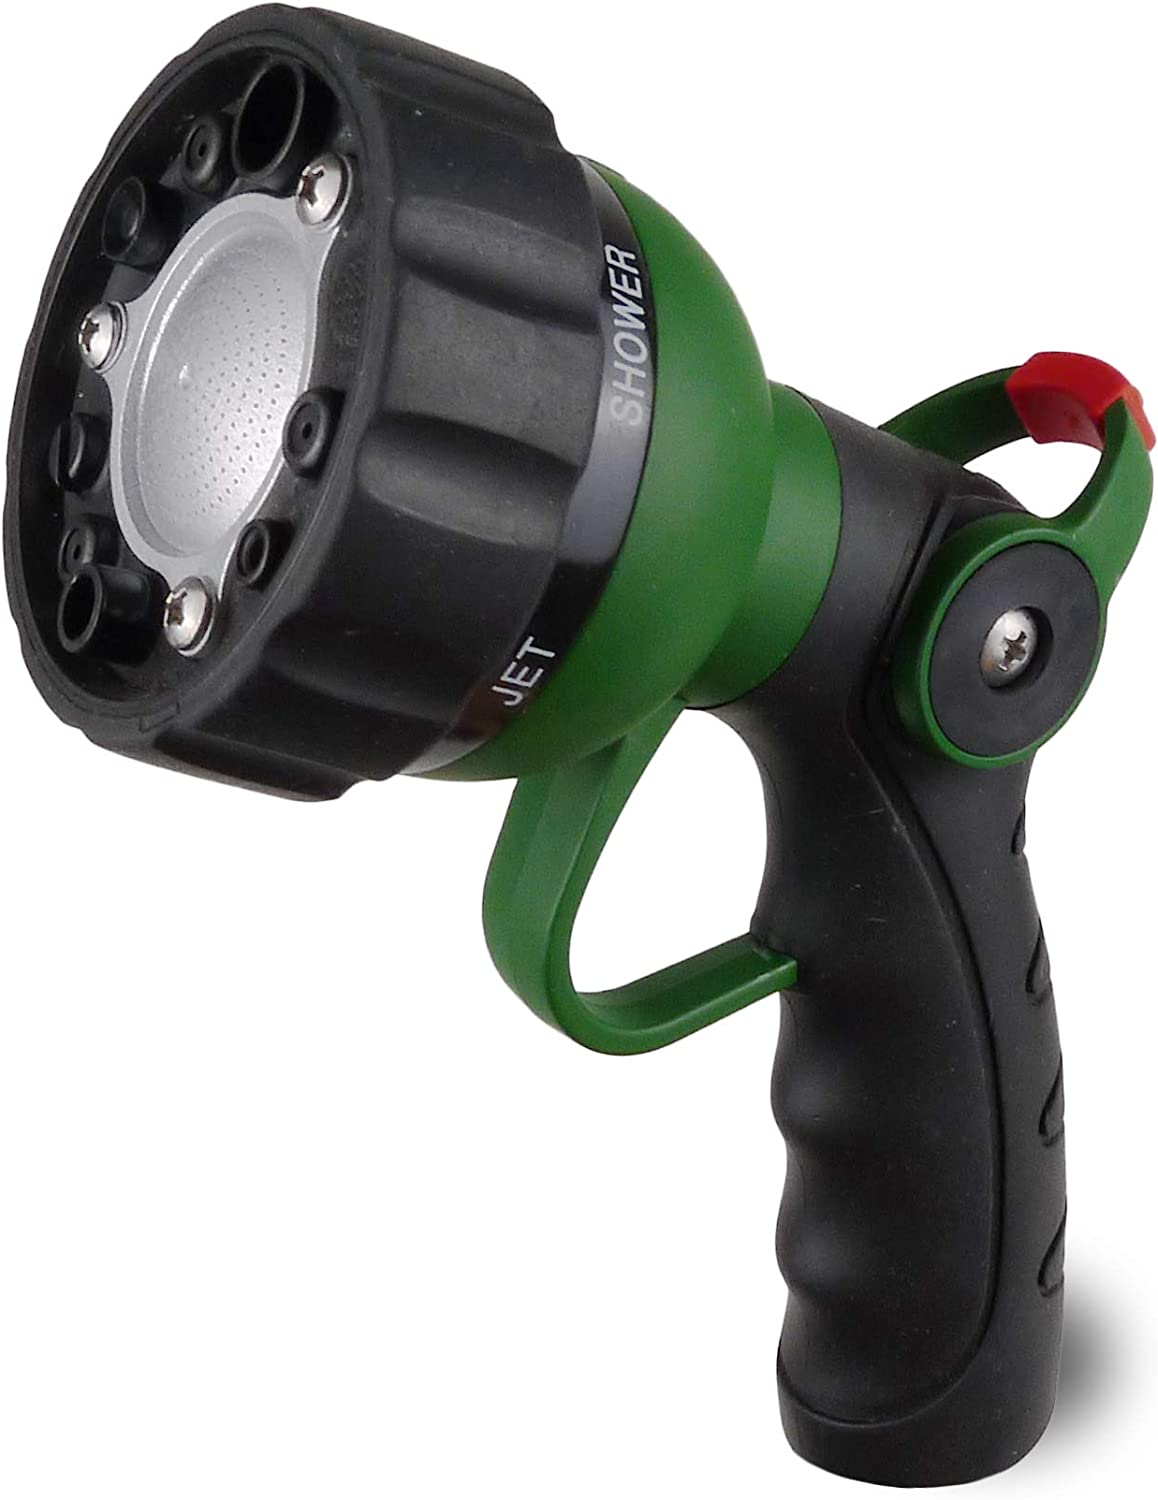 H2O WORKS Garden Hose Nozzle Thumb Control On Off Valve for Easy Water Flow Control, Heavy Duty Metal Garden Hose Nozzle with Adjustable Watering Patterns, Pefect for Car Washing and Pets Showering